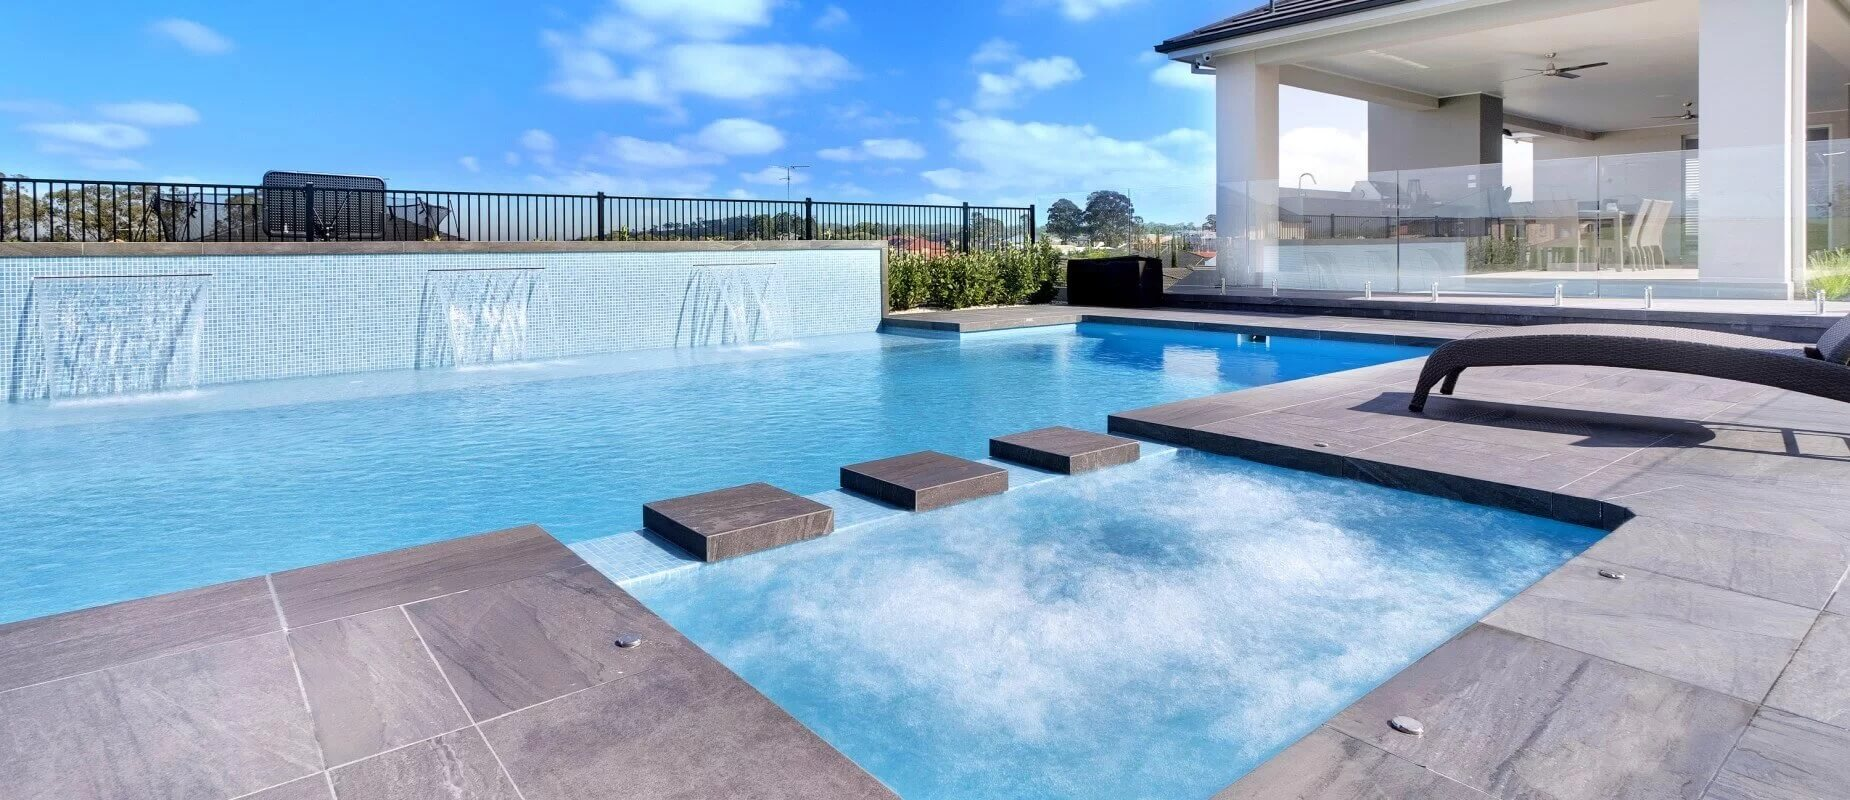 Composite Pool Solutions Pool water features